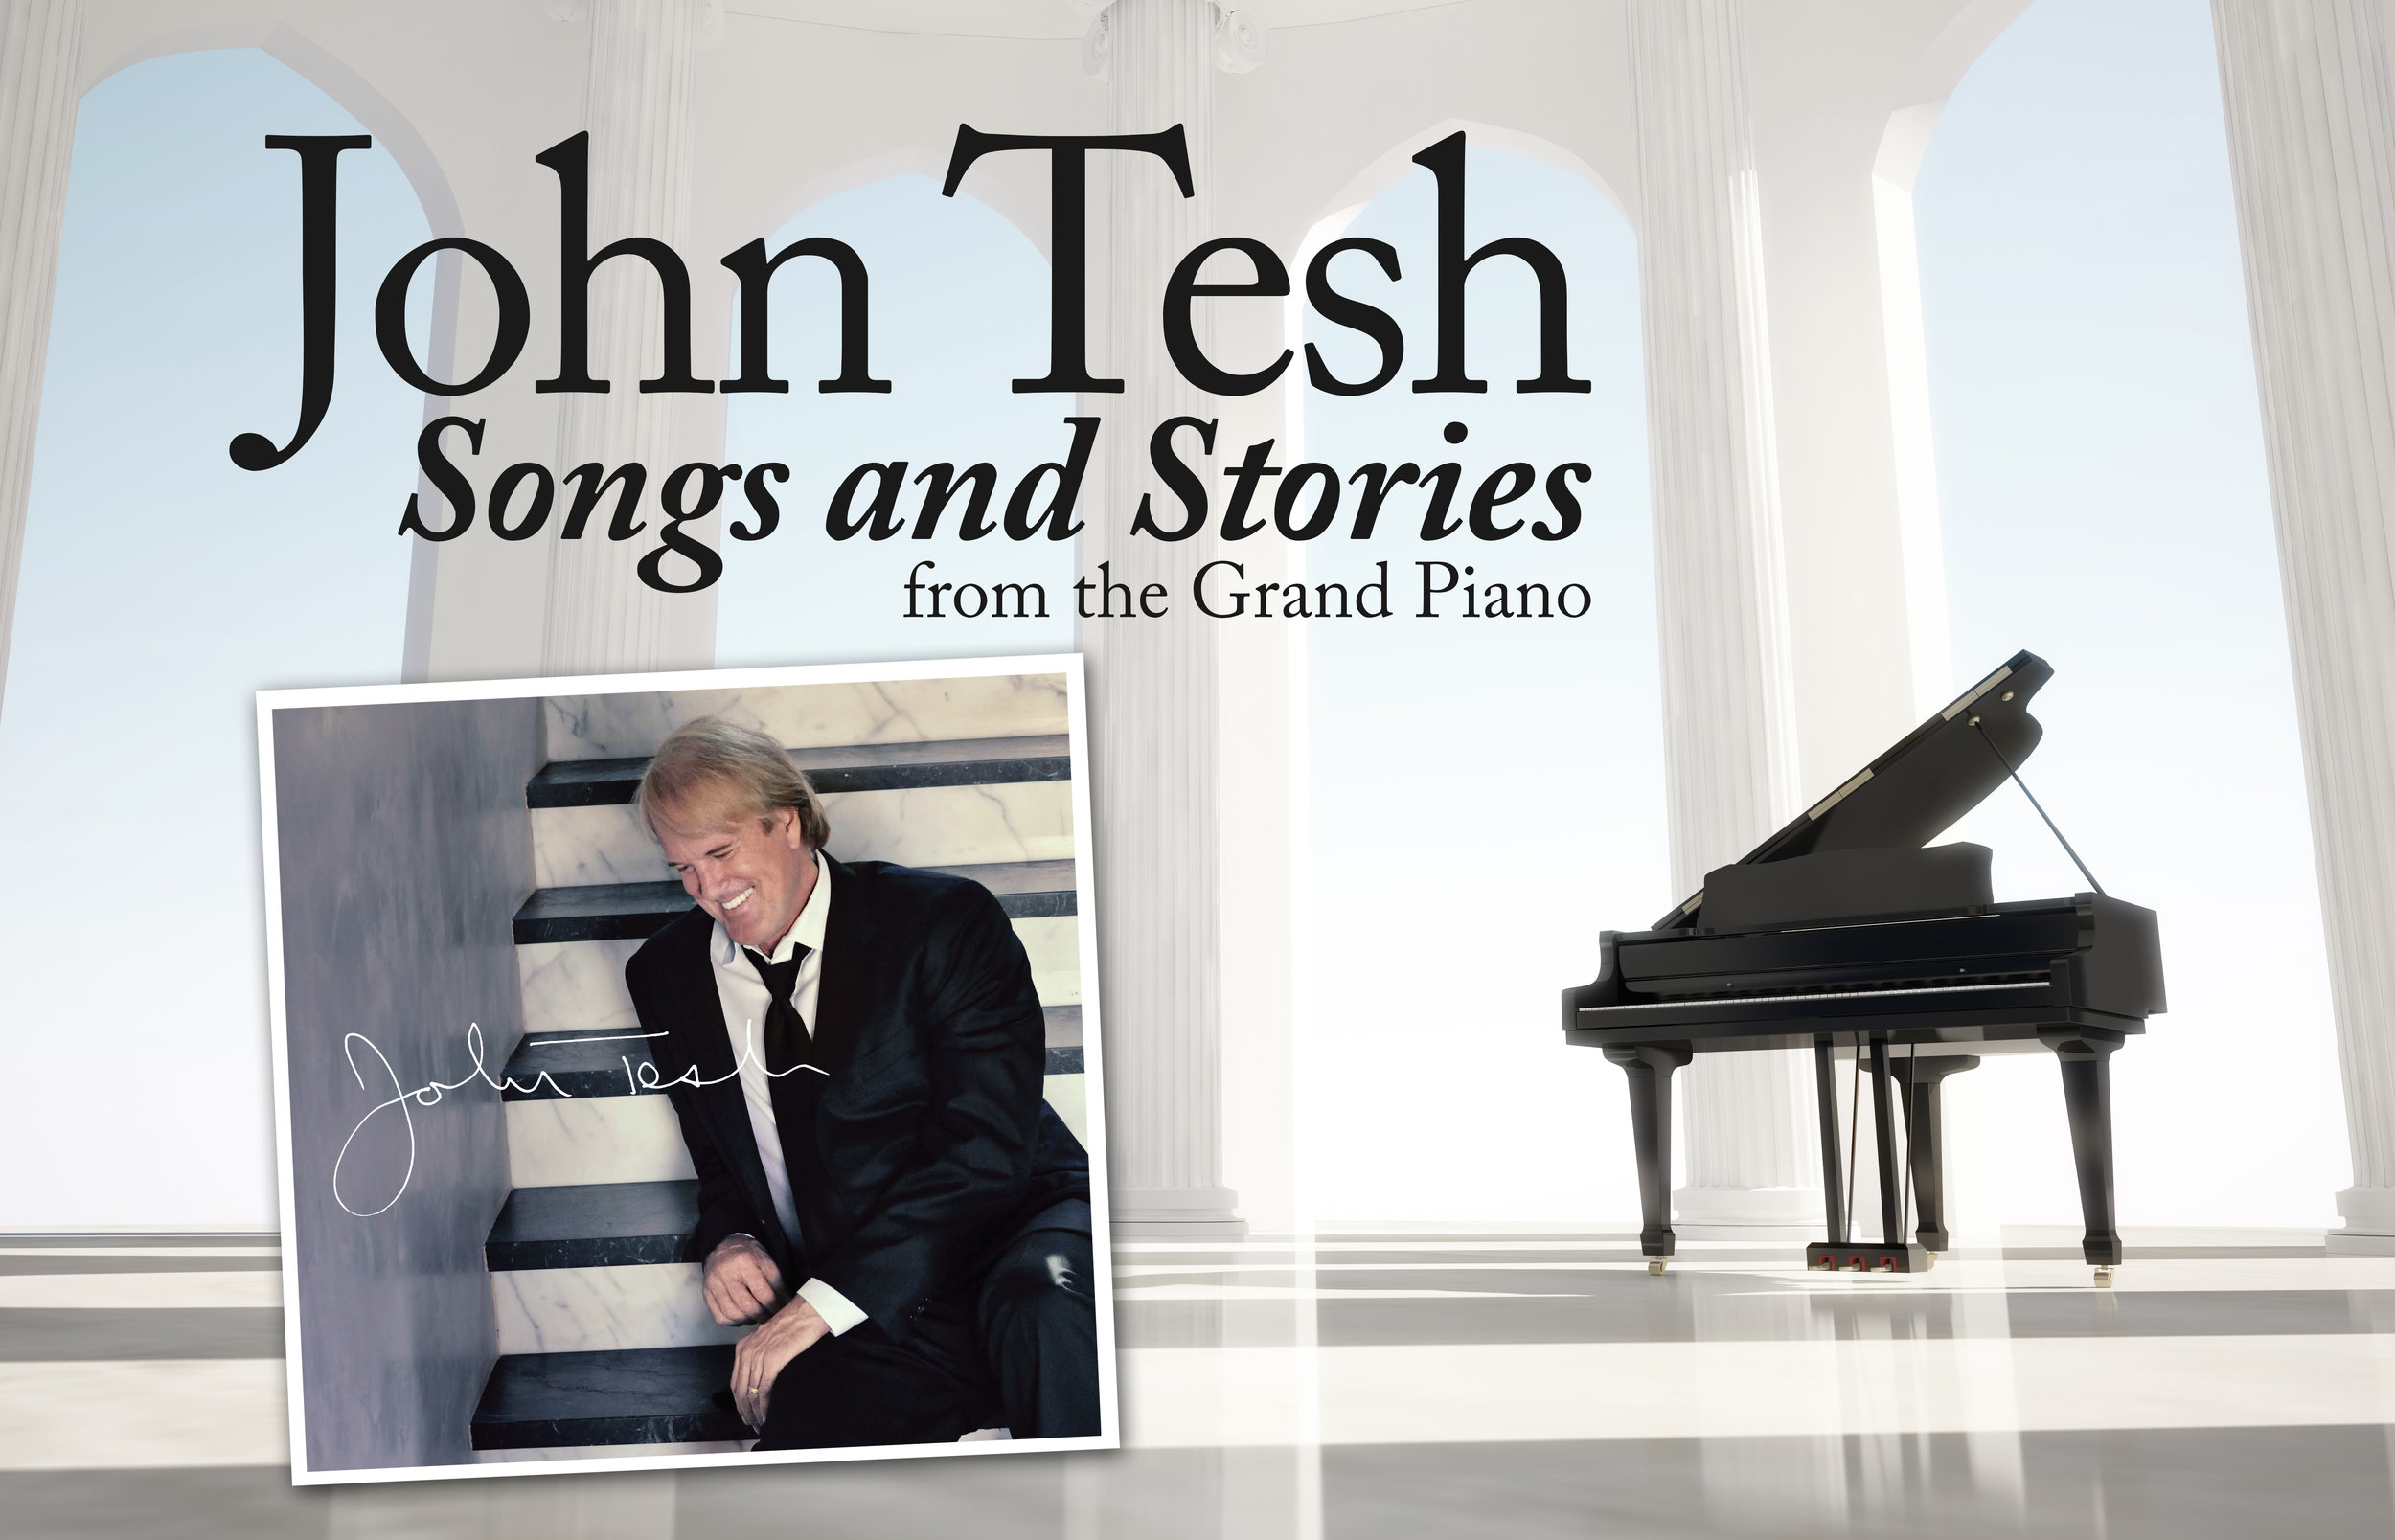 John Tesh is a composer, musician and broadcaster who has earned countless awards and honors including six music Emmys and three gold records. He's also headlined multiple PBS specials and sold 8 million records. (Photo: John Tesh)<br><p></p><p></p><p></p>